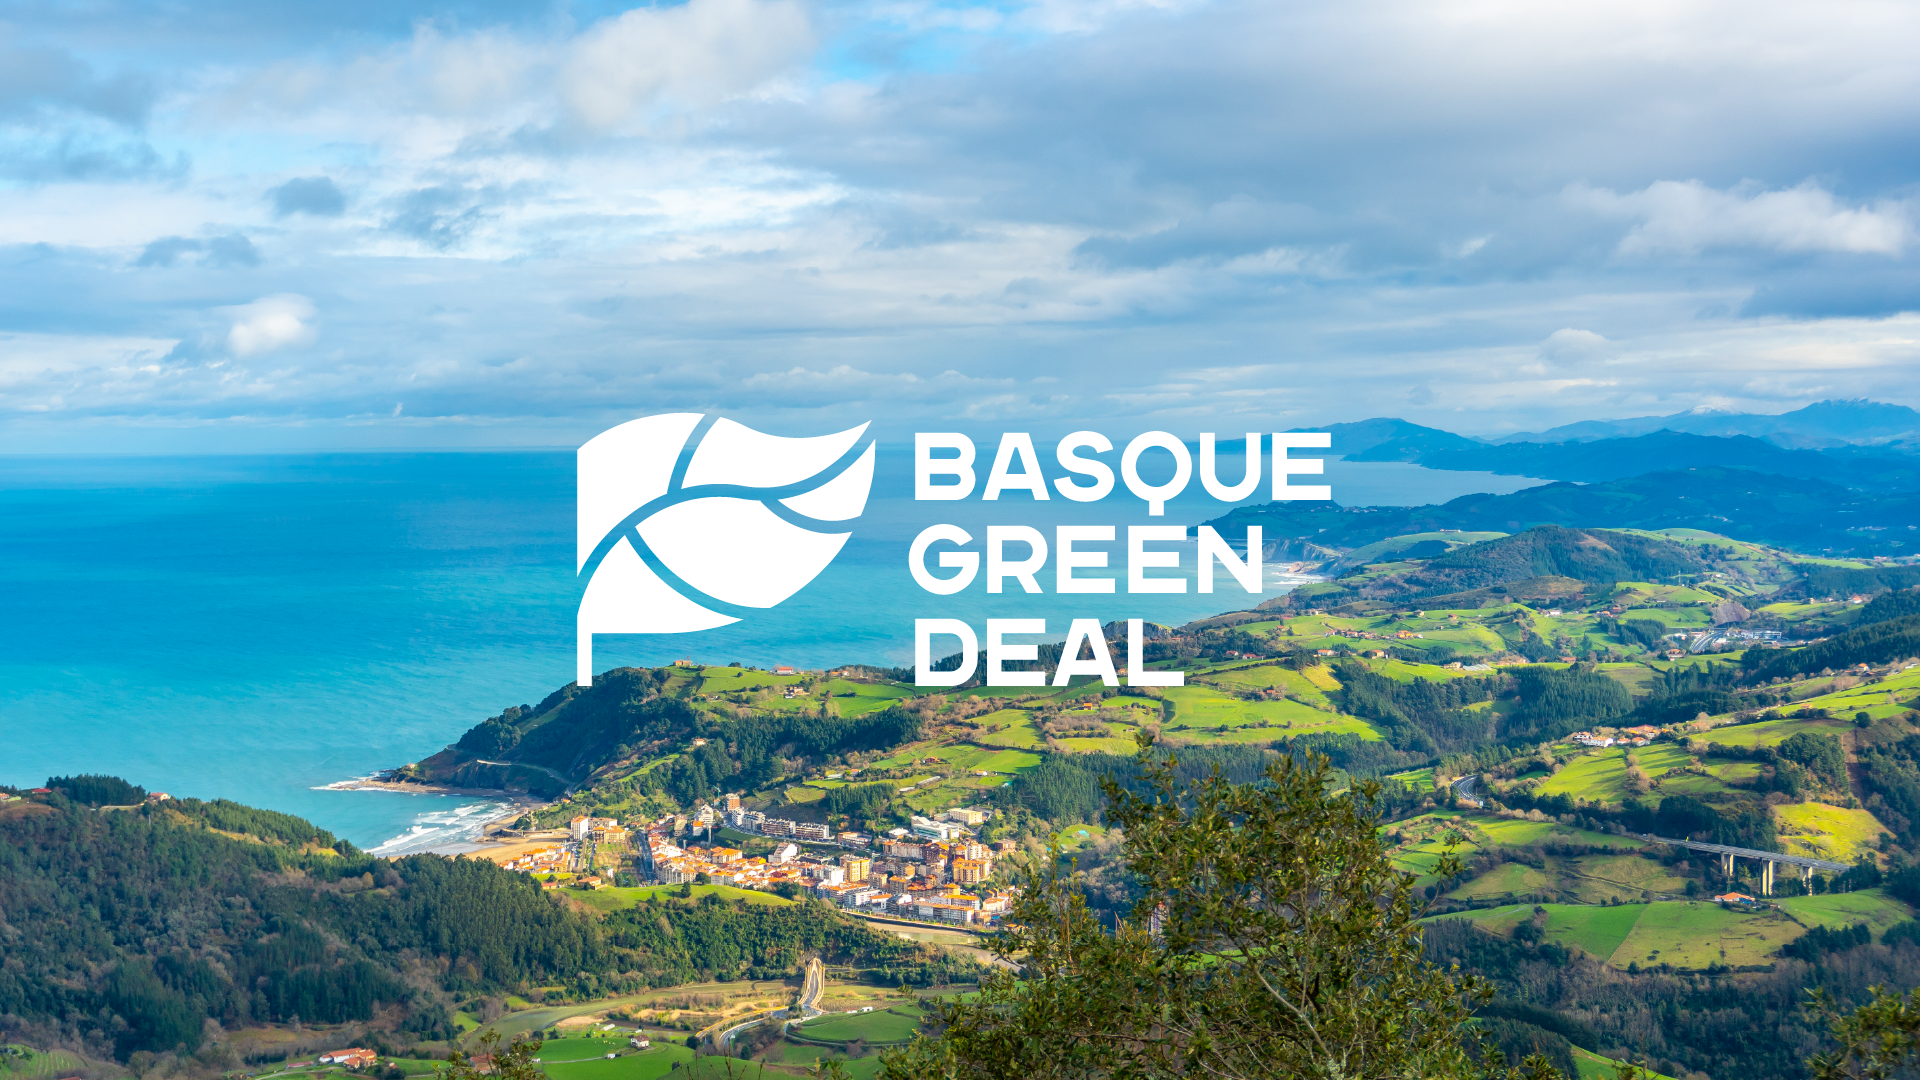 Basque_Green_Deal_7R.png